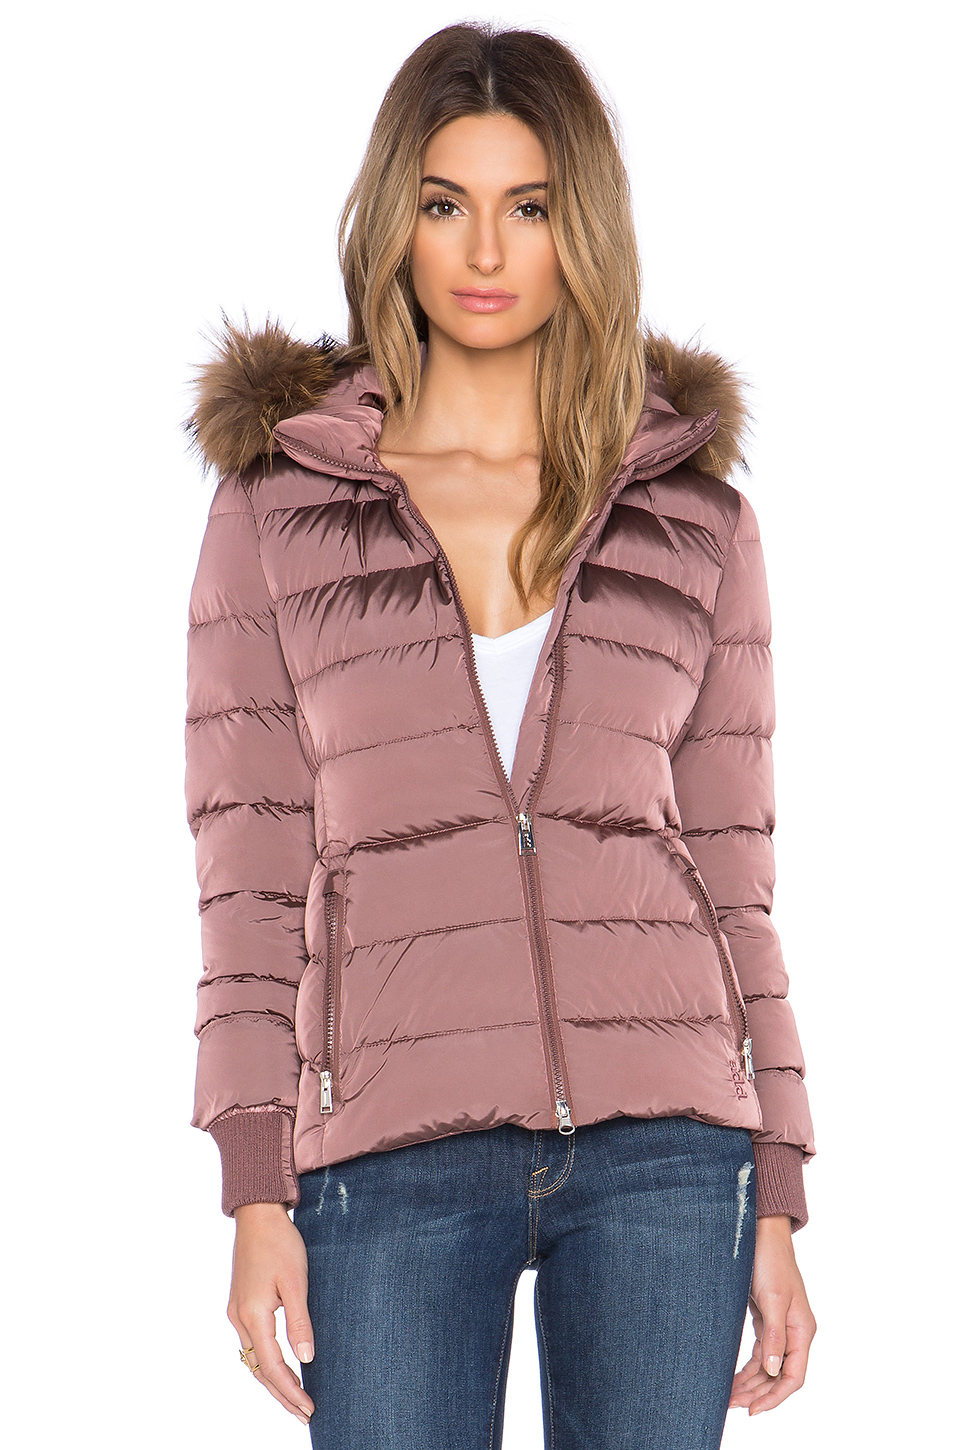 Add Down-Filled Fur-Trim Jacket in Pink | Lyst